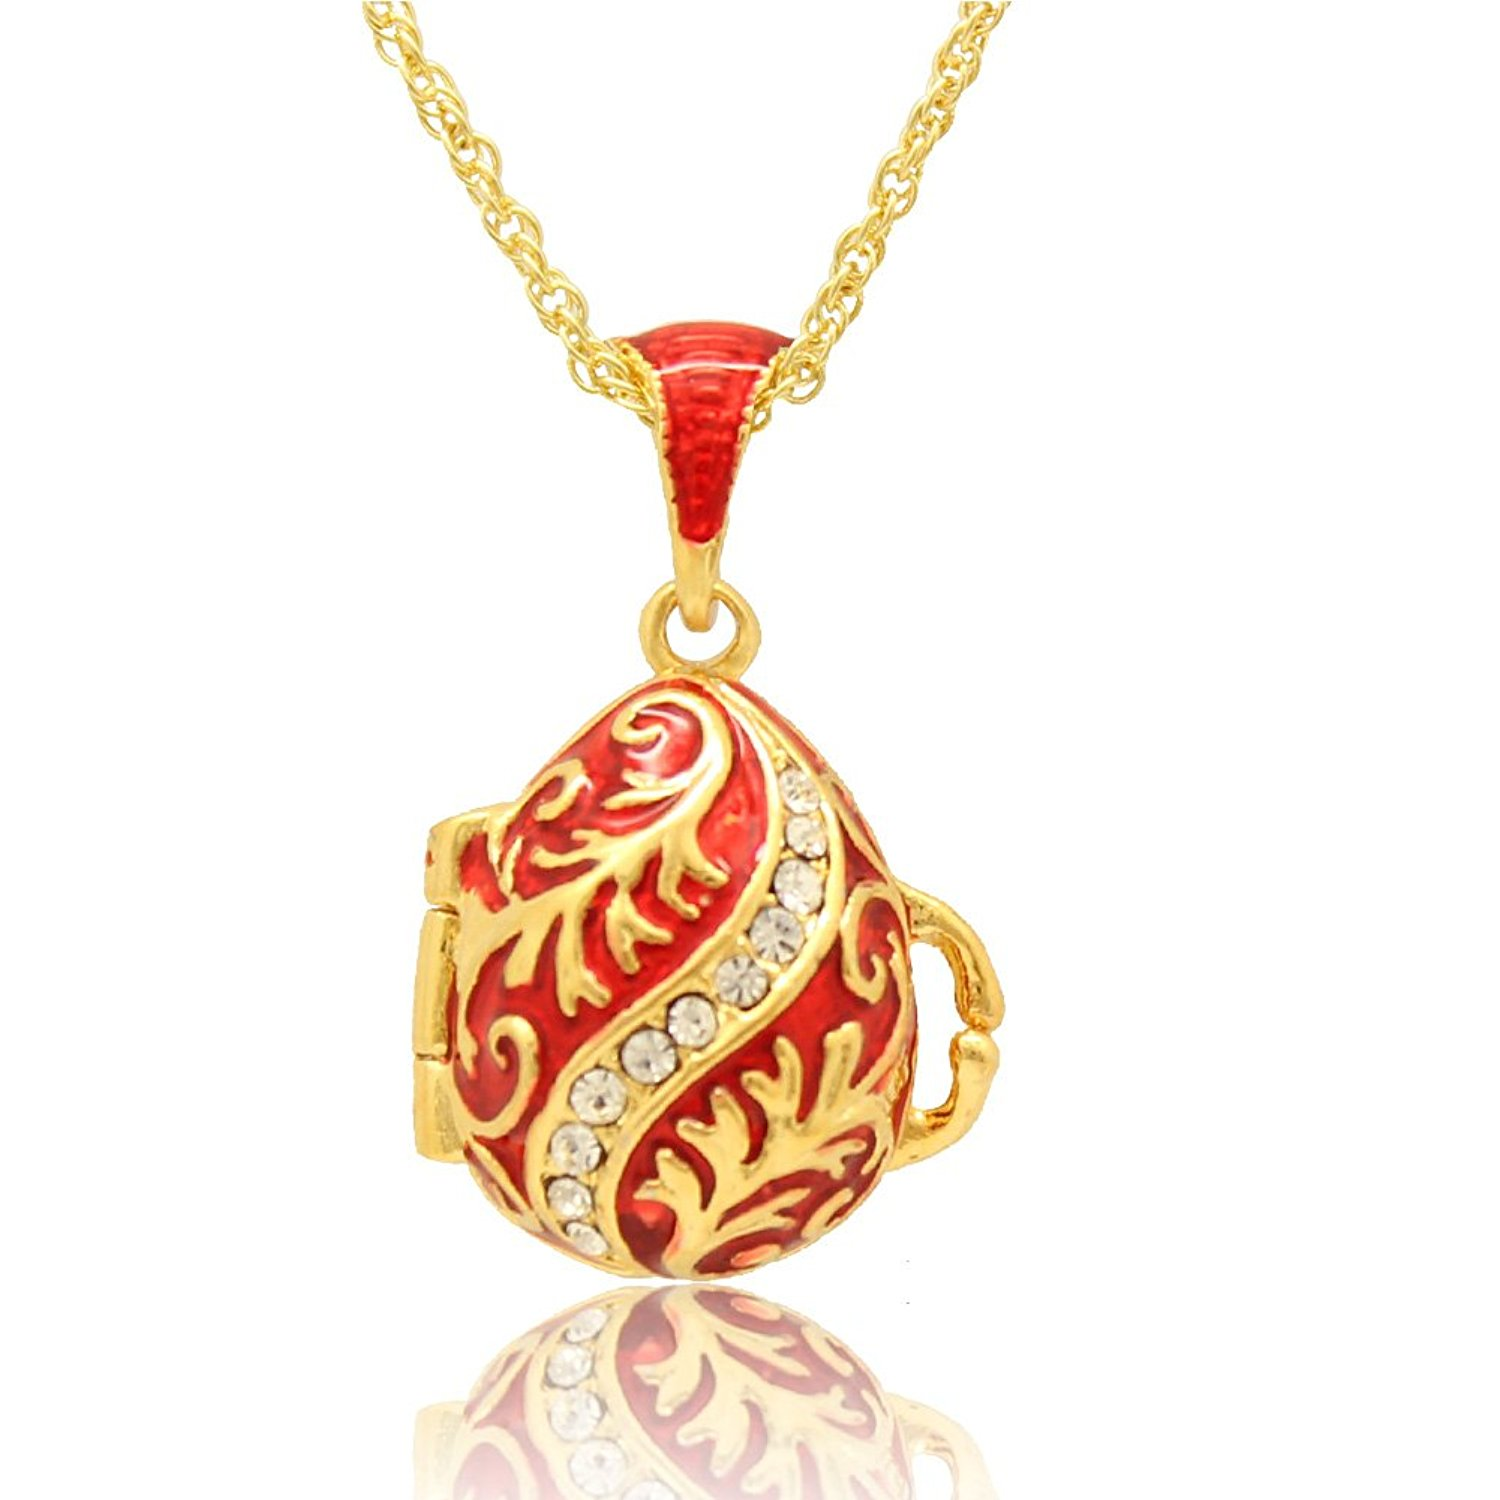 MYD Jewelry Enameled Crystal Leaf Easter Faberge Egg Locket Pendant Necklace